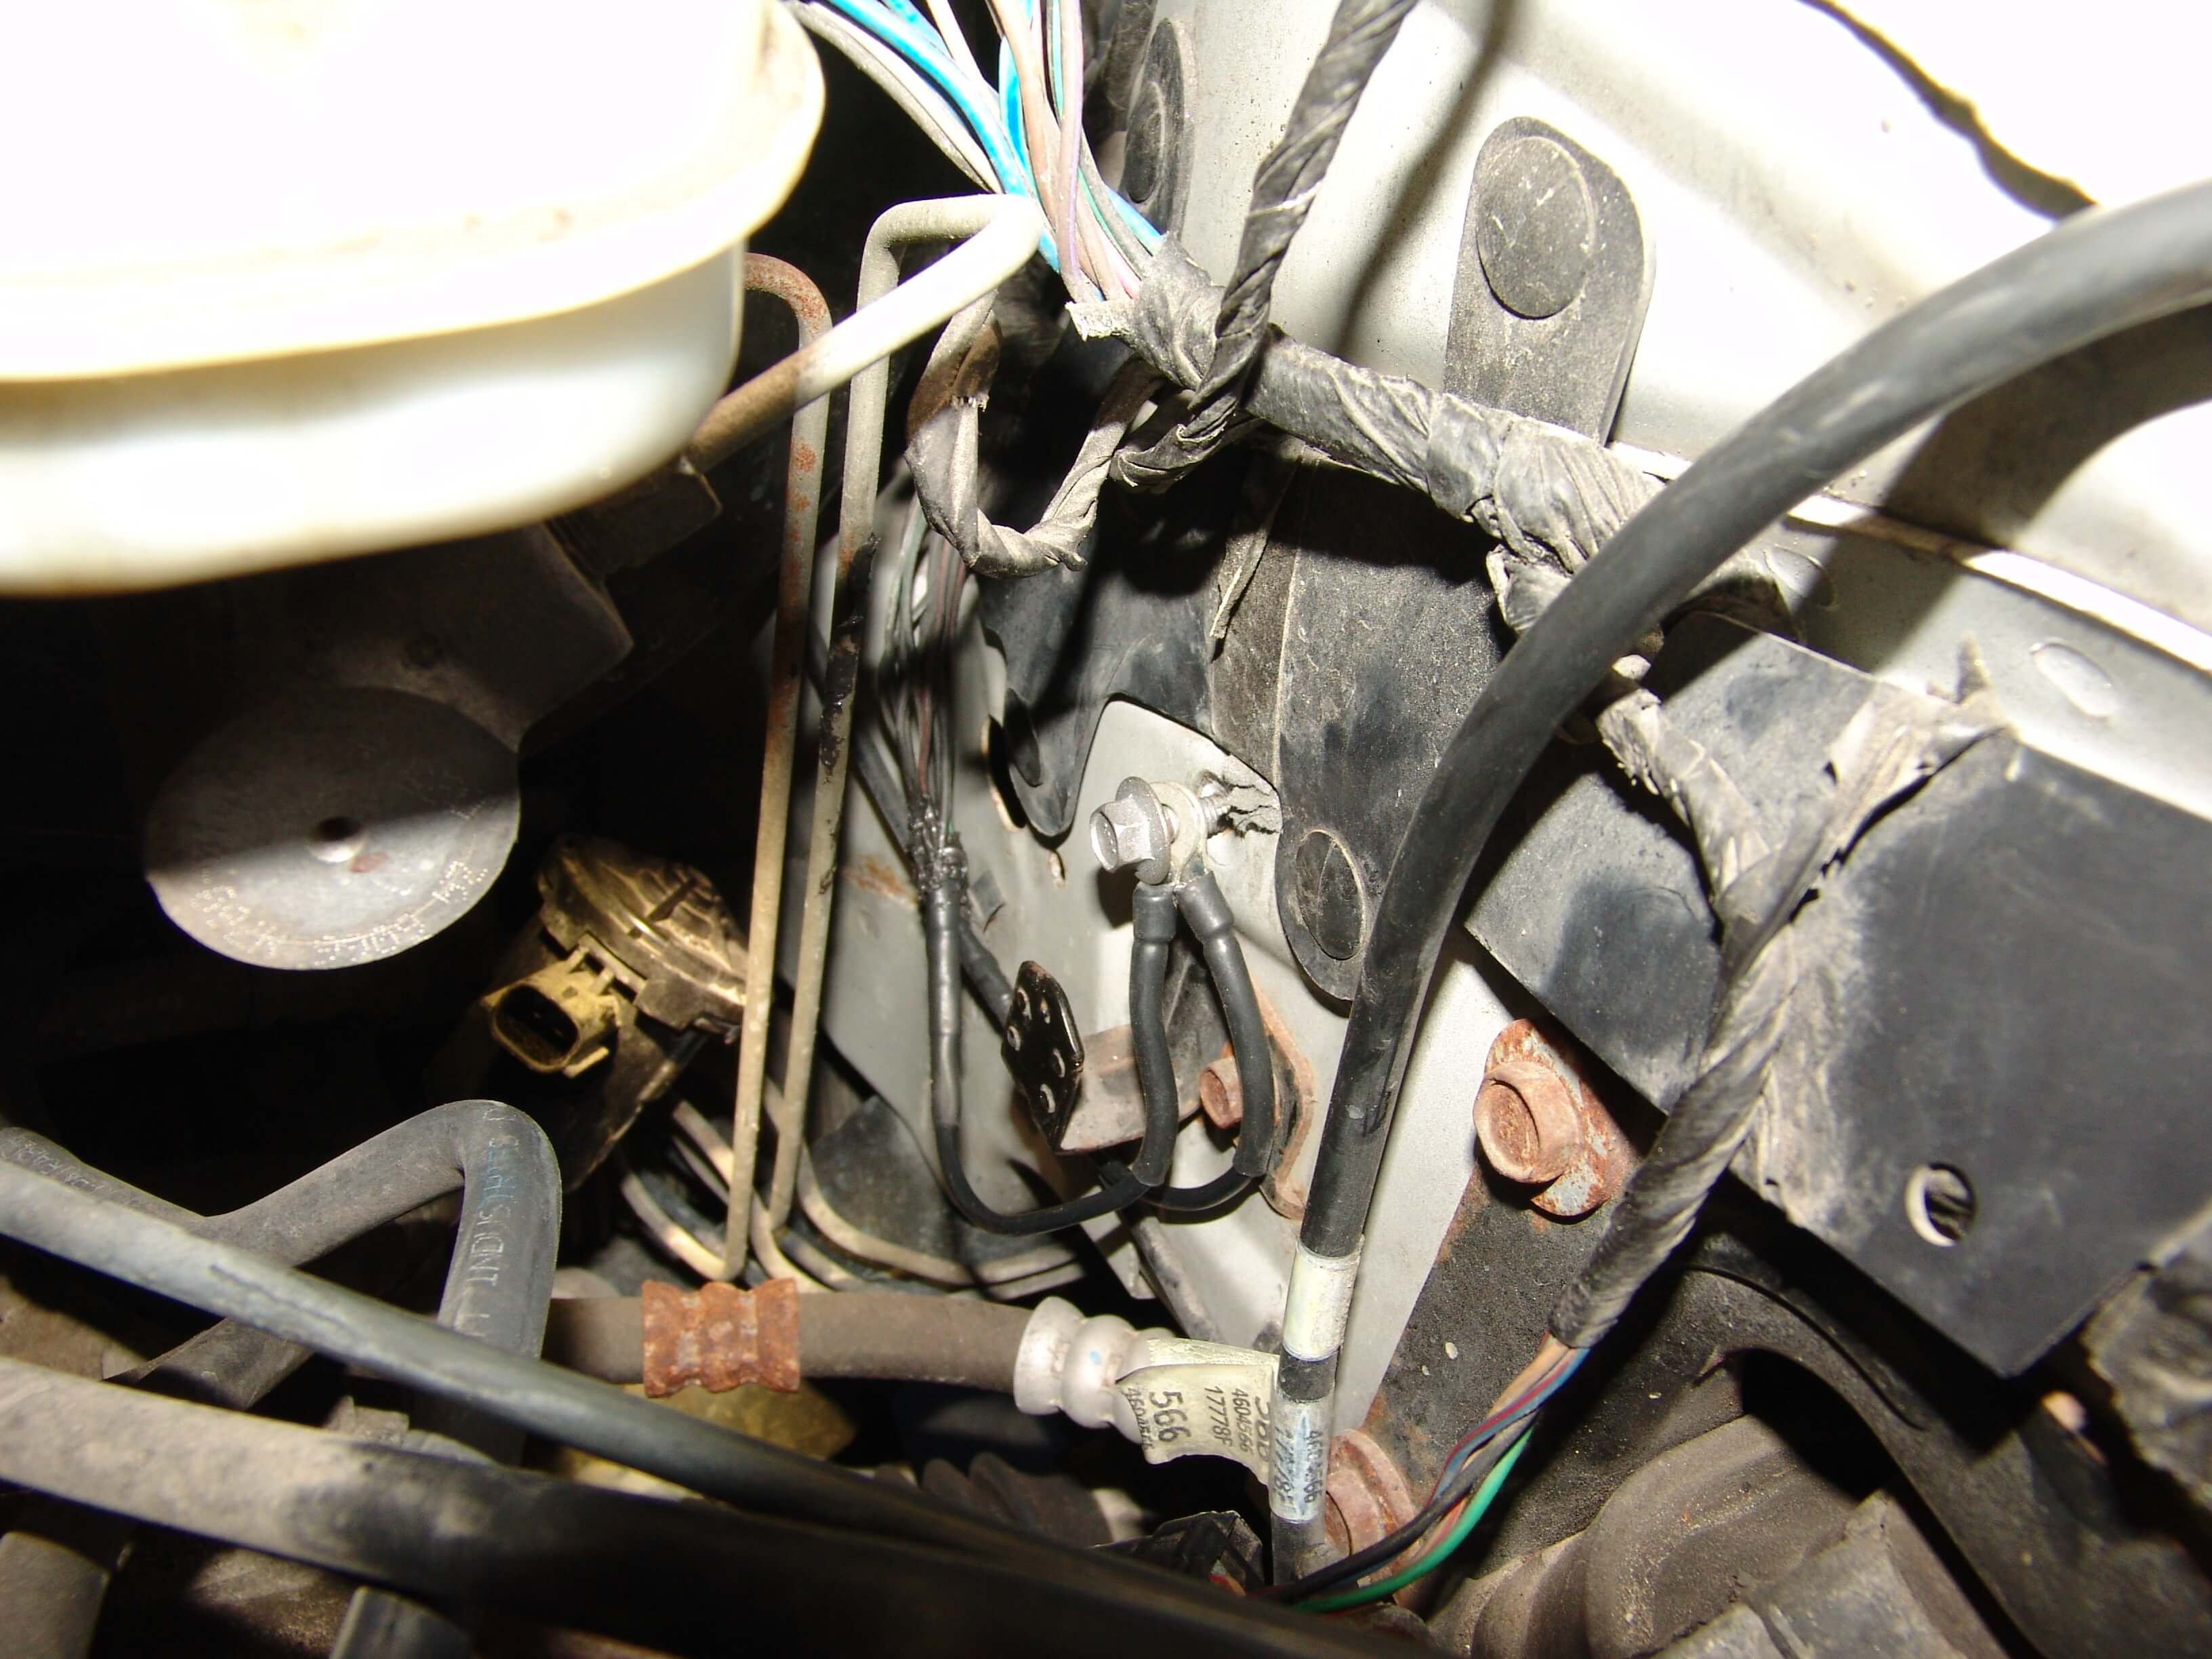 Wiring Diagram For 2004 Chrysler Sebring Get Free Image About Wiring